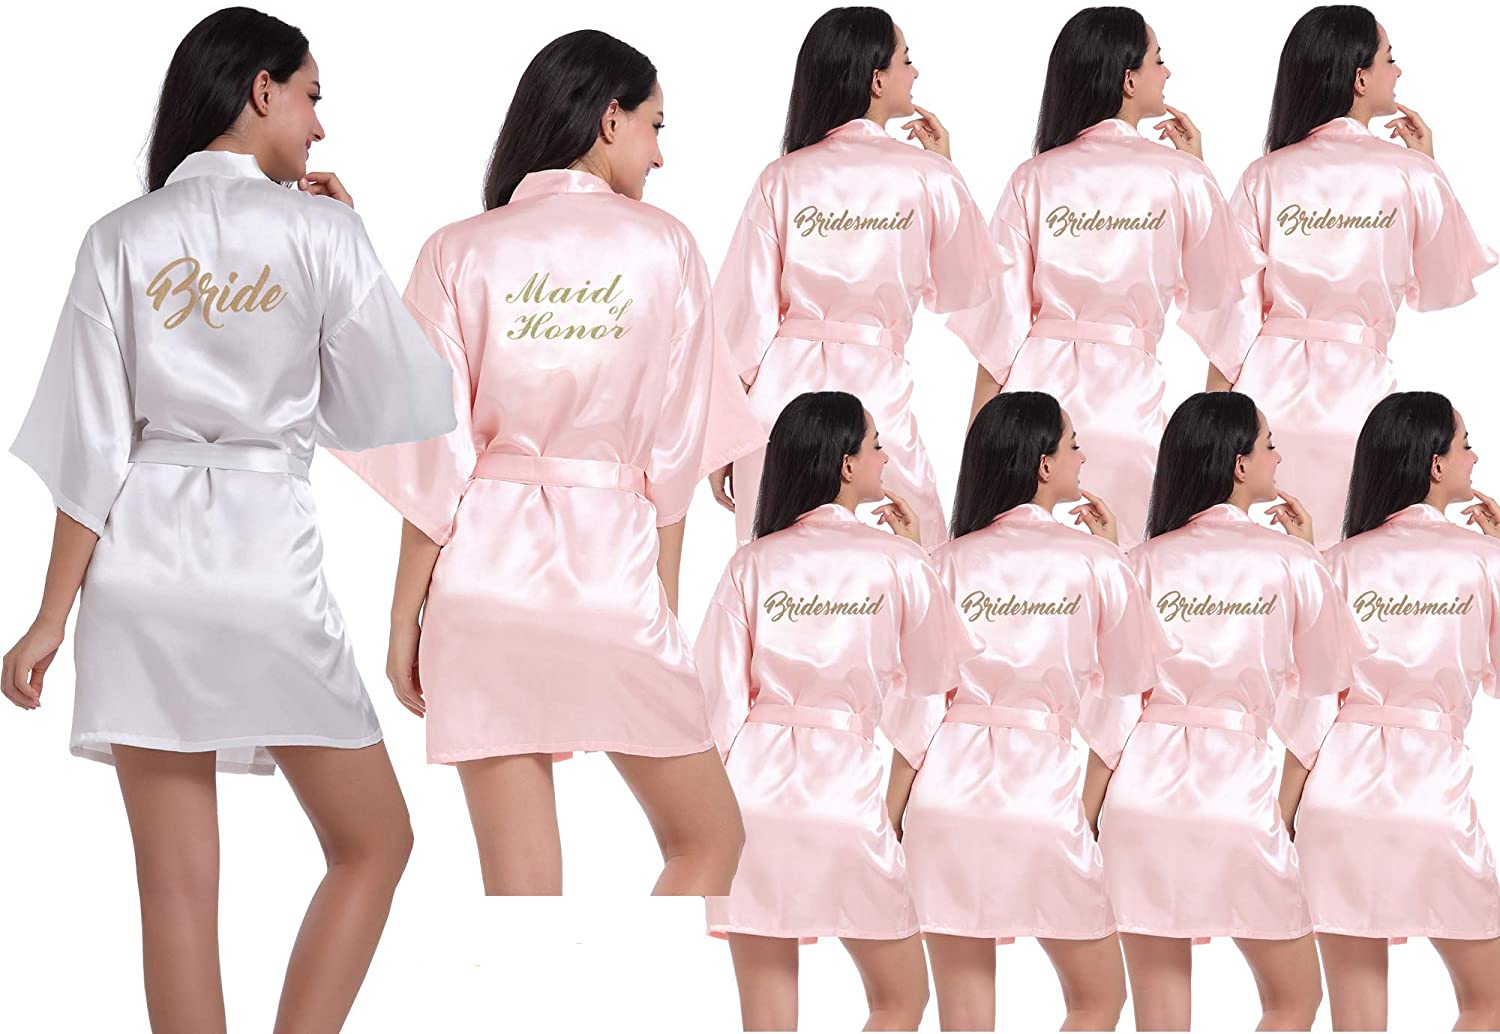 DF-deals Set of 3-12 Women's Kimono Robes with Gold Glitter for Bridesmaid and Bride,Wedding Party Getting Ready Short Robe